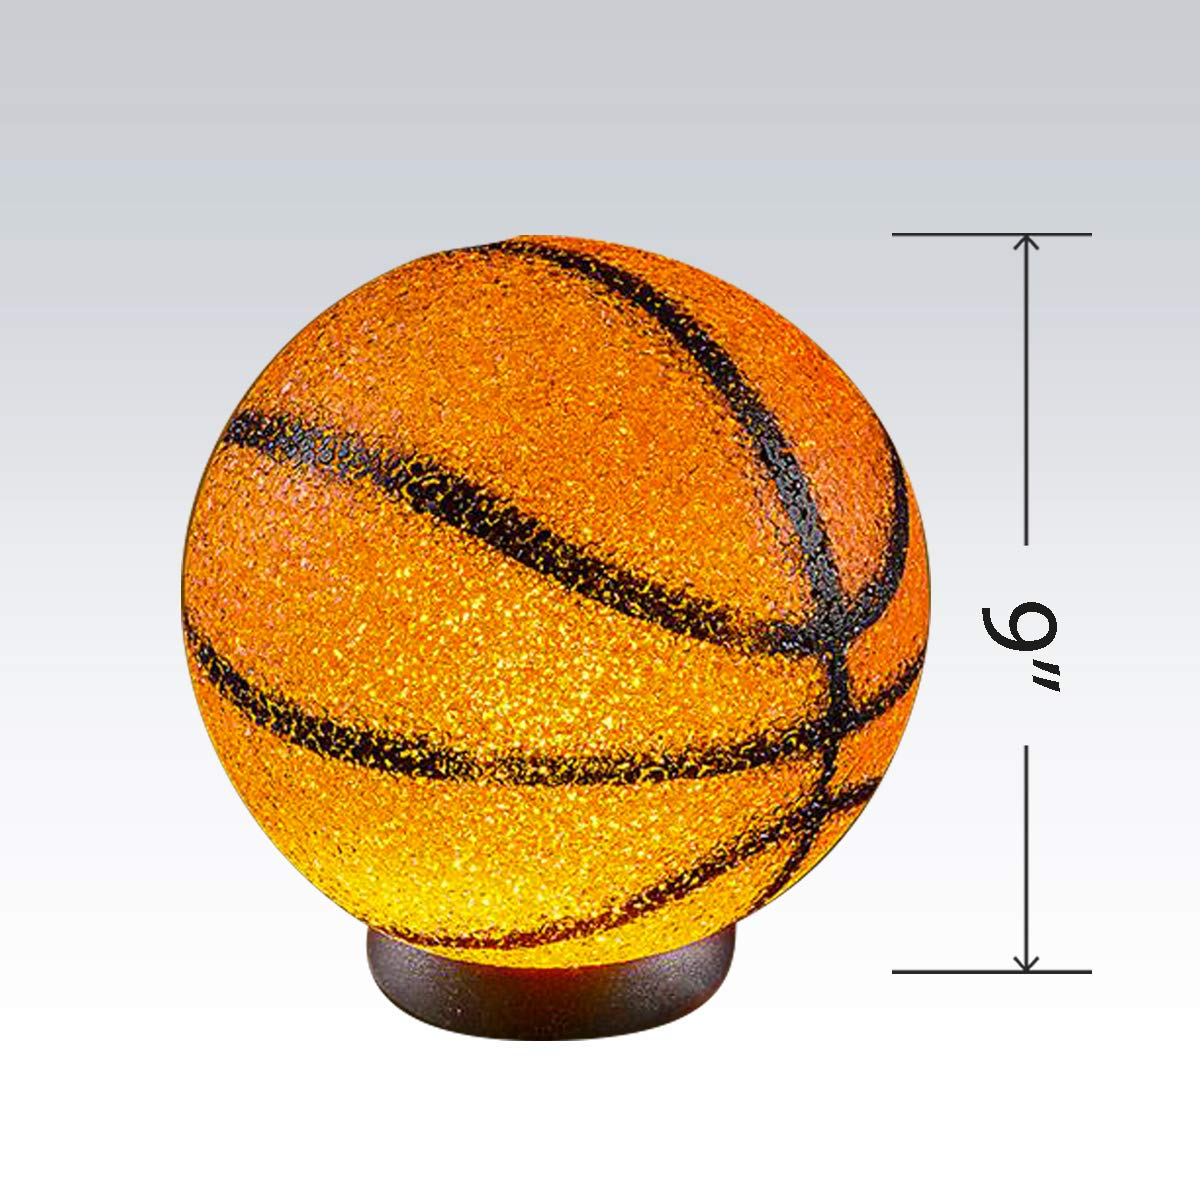 Kicko Sparkle Basketball Lamp Housewarming House Decoration themed-Parties Room Decoration 9 Inch Basketball Ball Shaped Lamp with Sturdy Plastic Base for Kid Bedrooms